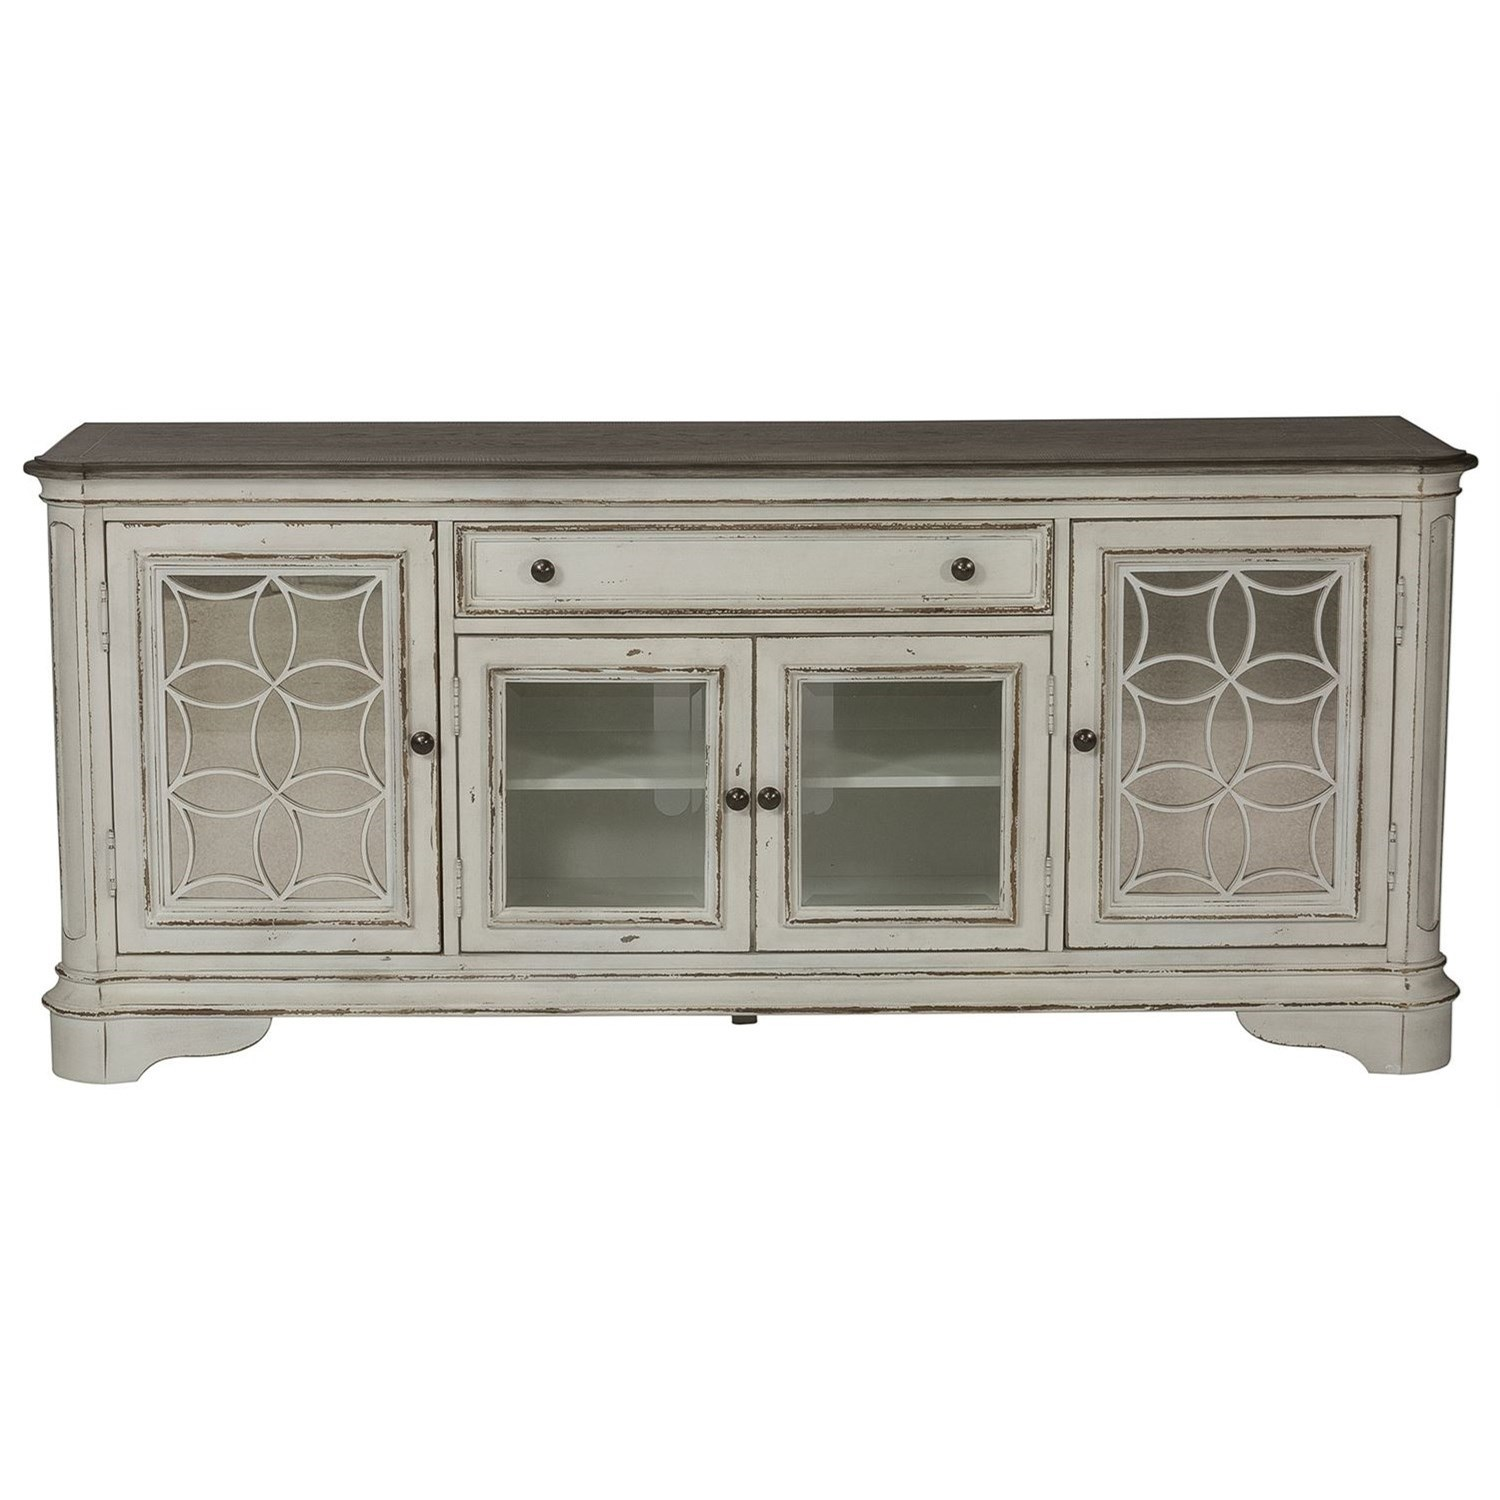 Magnolia Manor Entertainment TV Stand by Liberty Furniture at Bullard Furniture